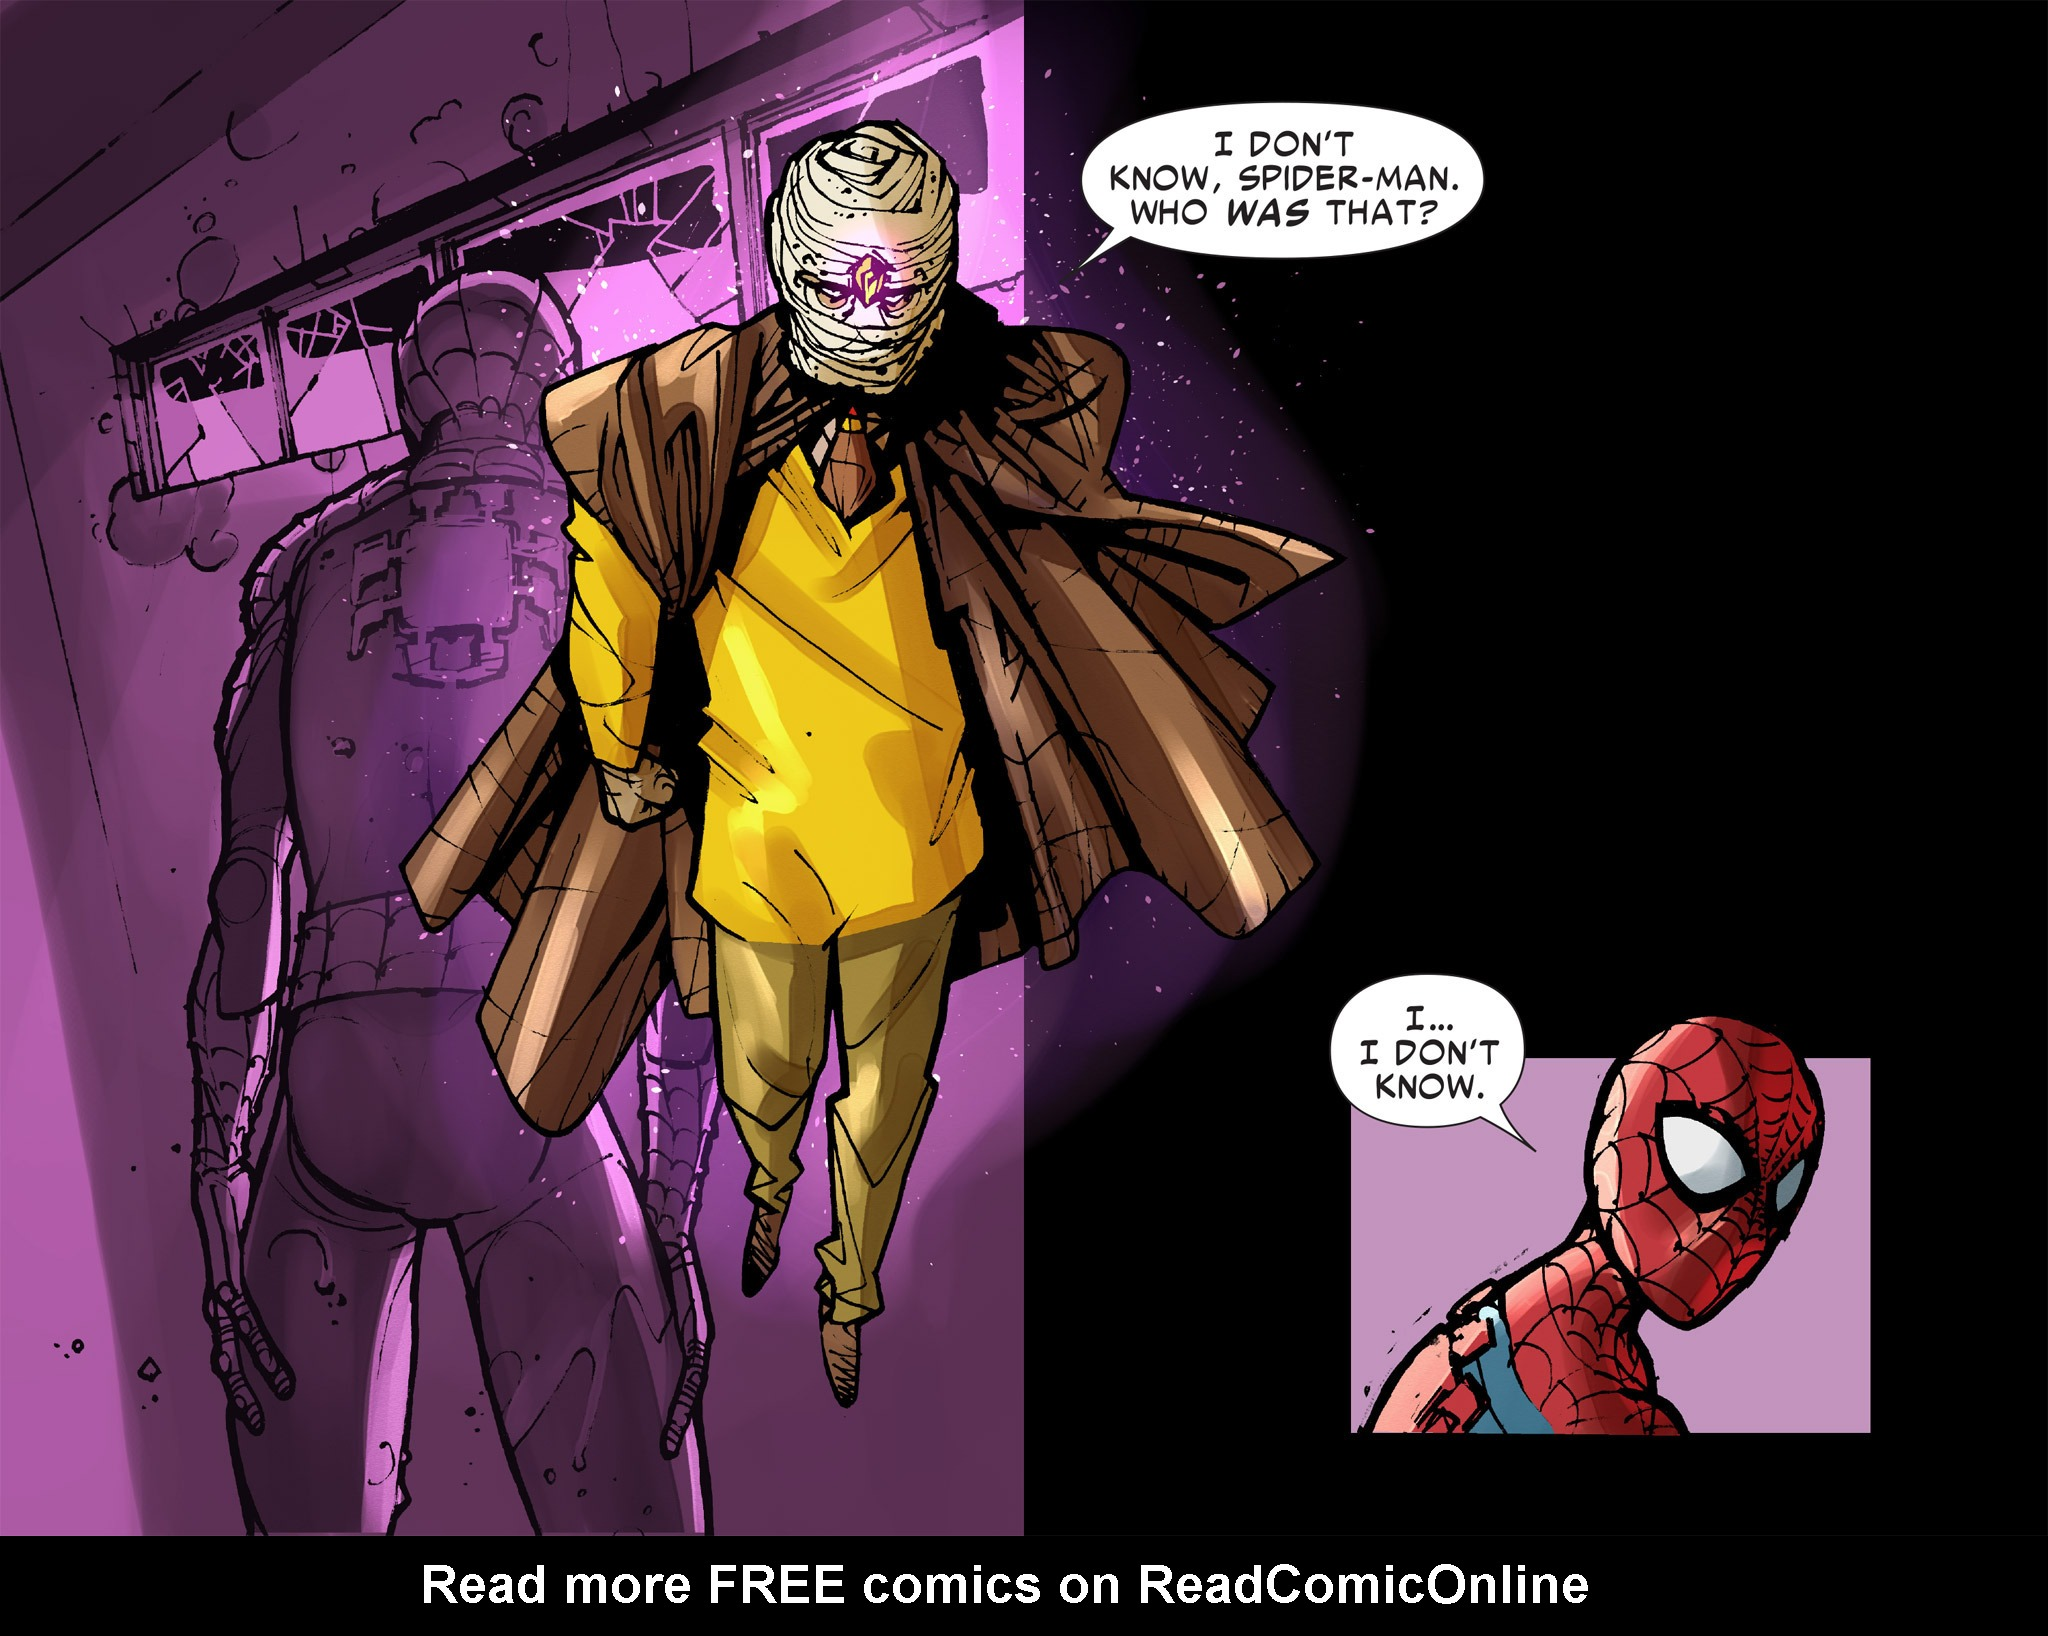 Read online Amazing Spider-Man: Who Am I? comic -  Issue # Full (Part 2) - 159